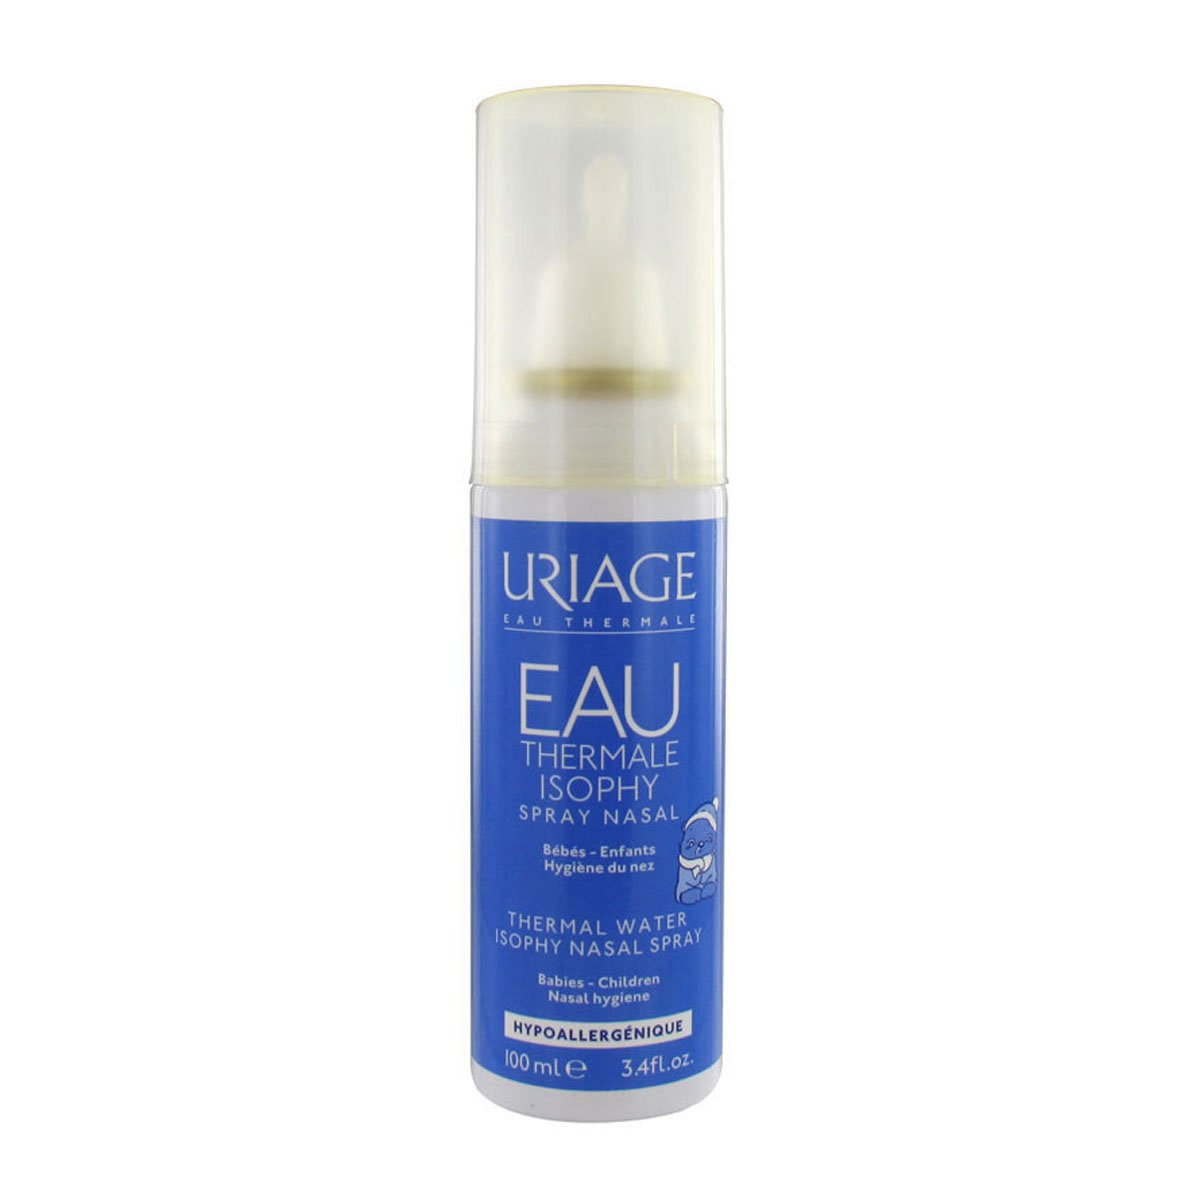 Bebe by Uriage Eau Thermale 1st Nasal Spray 100ml URIURIU73000393